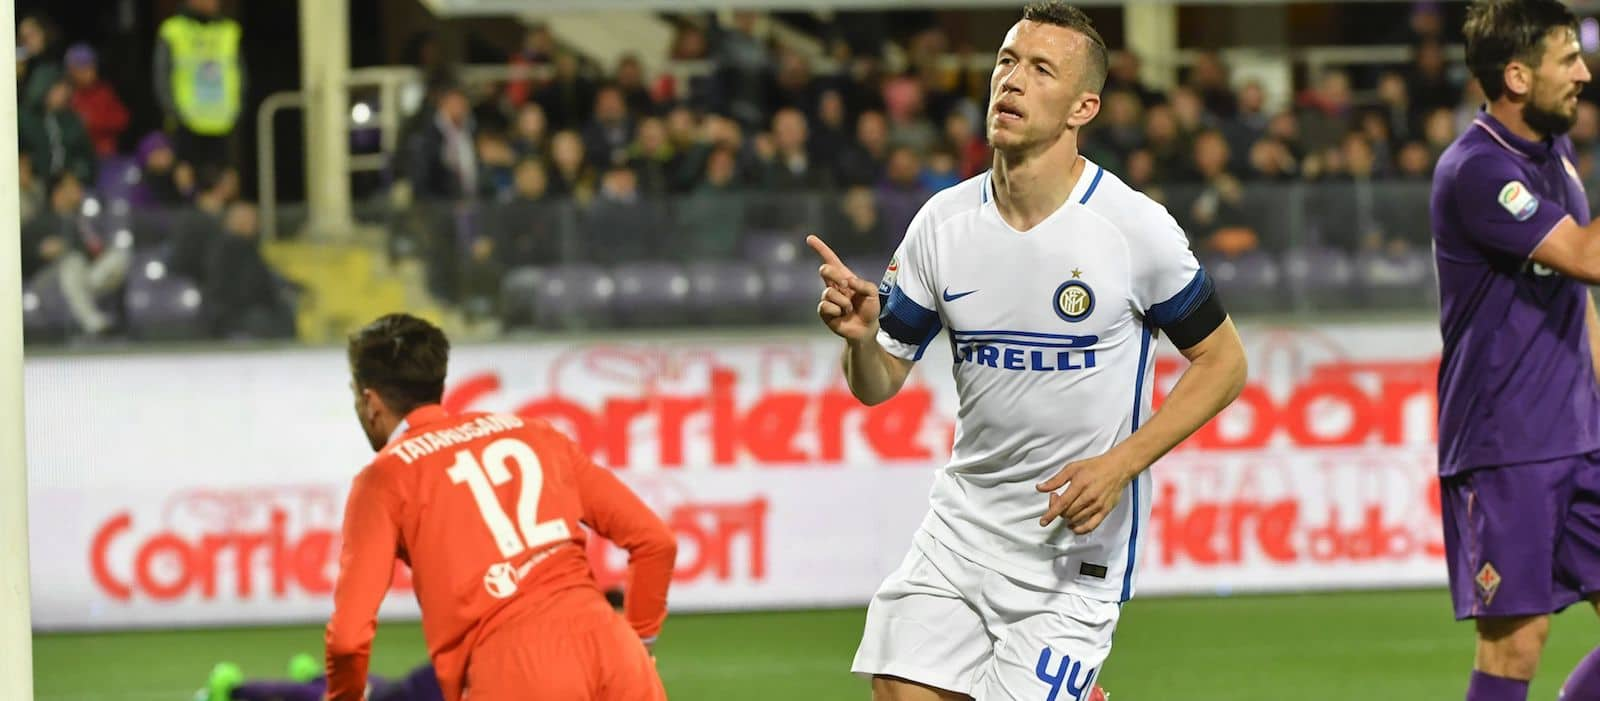 Photo: What Ivan Perisic will bring to Manchester United